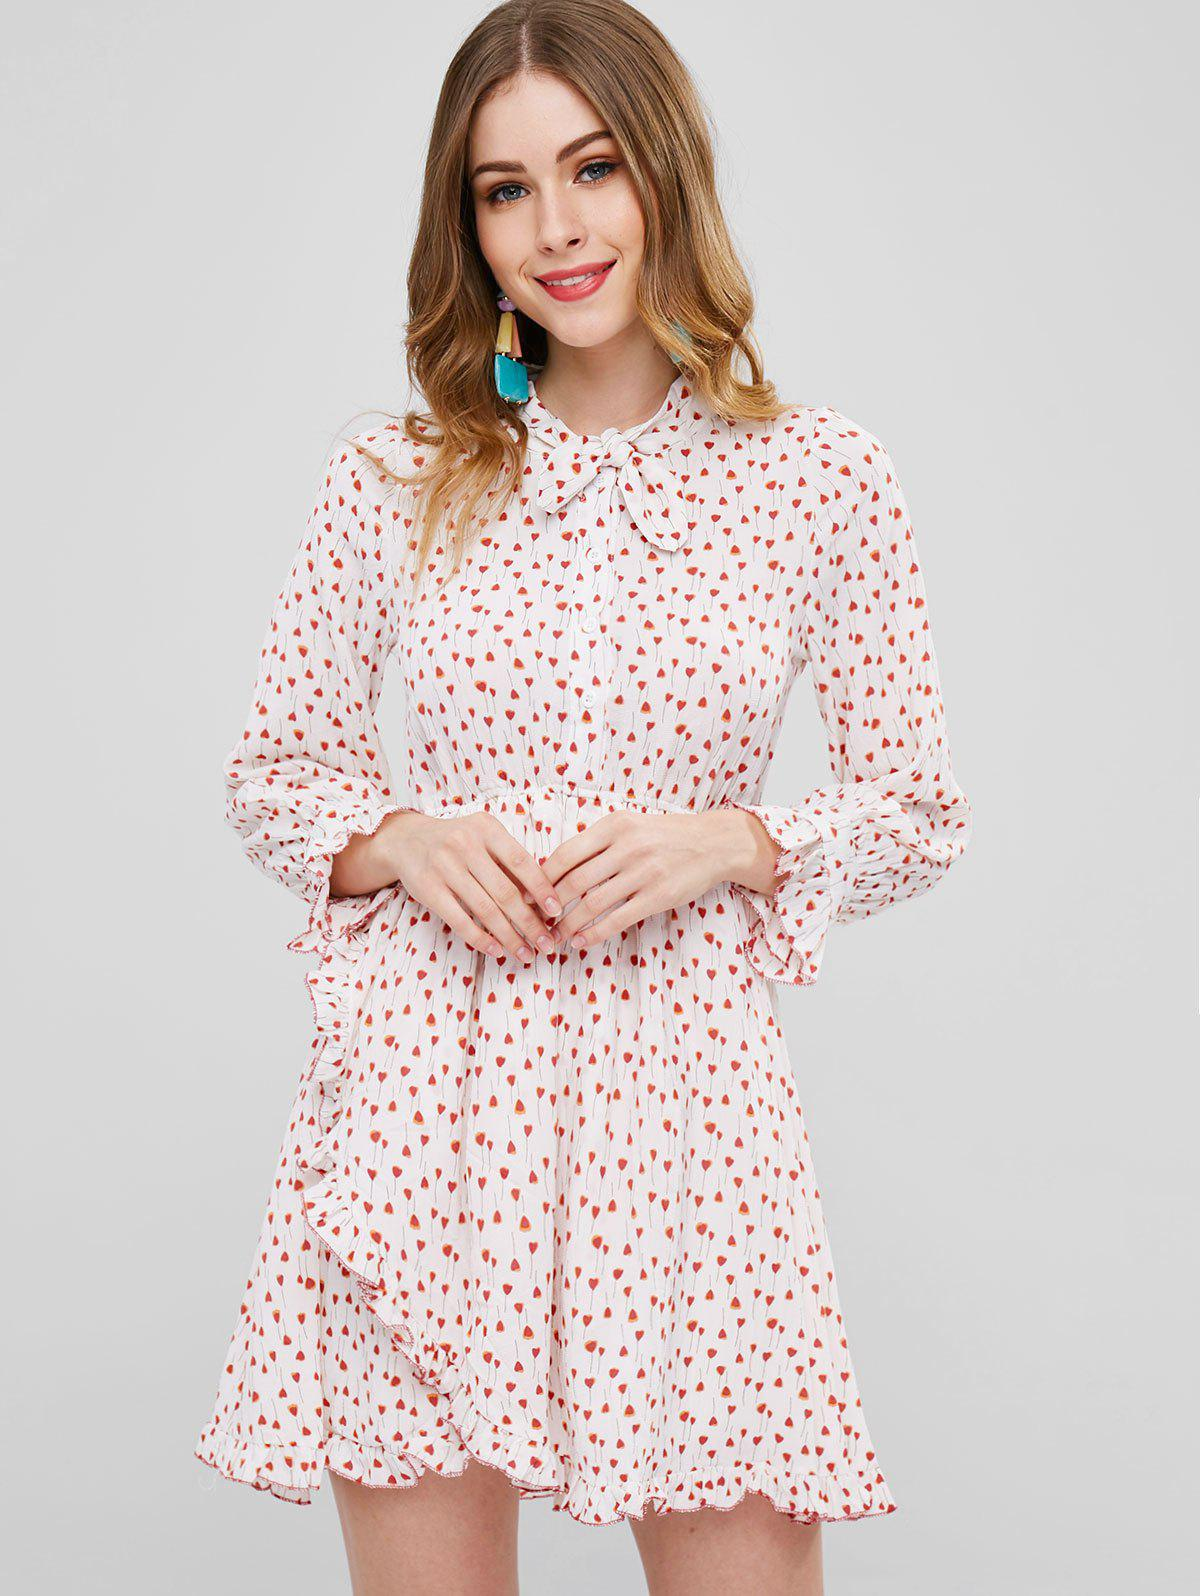 Heart Print Asymmetric Bowtie Dress